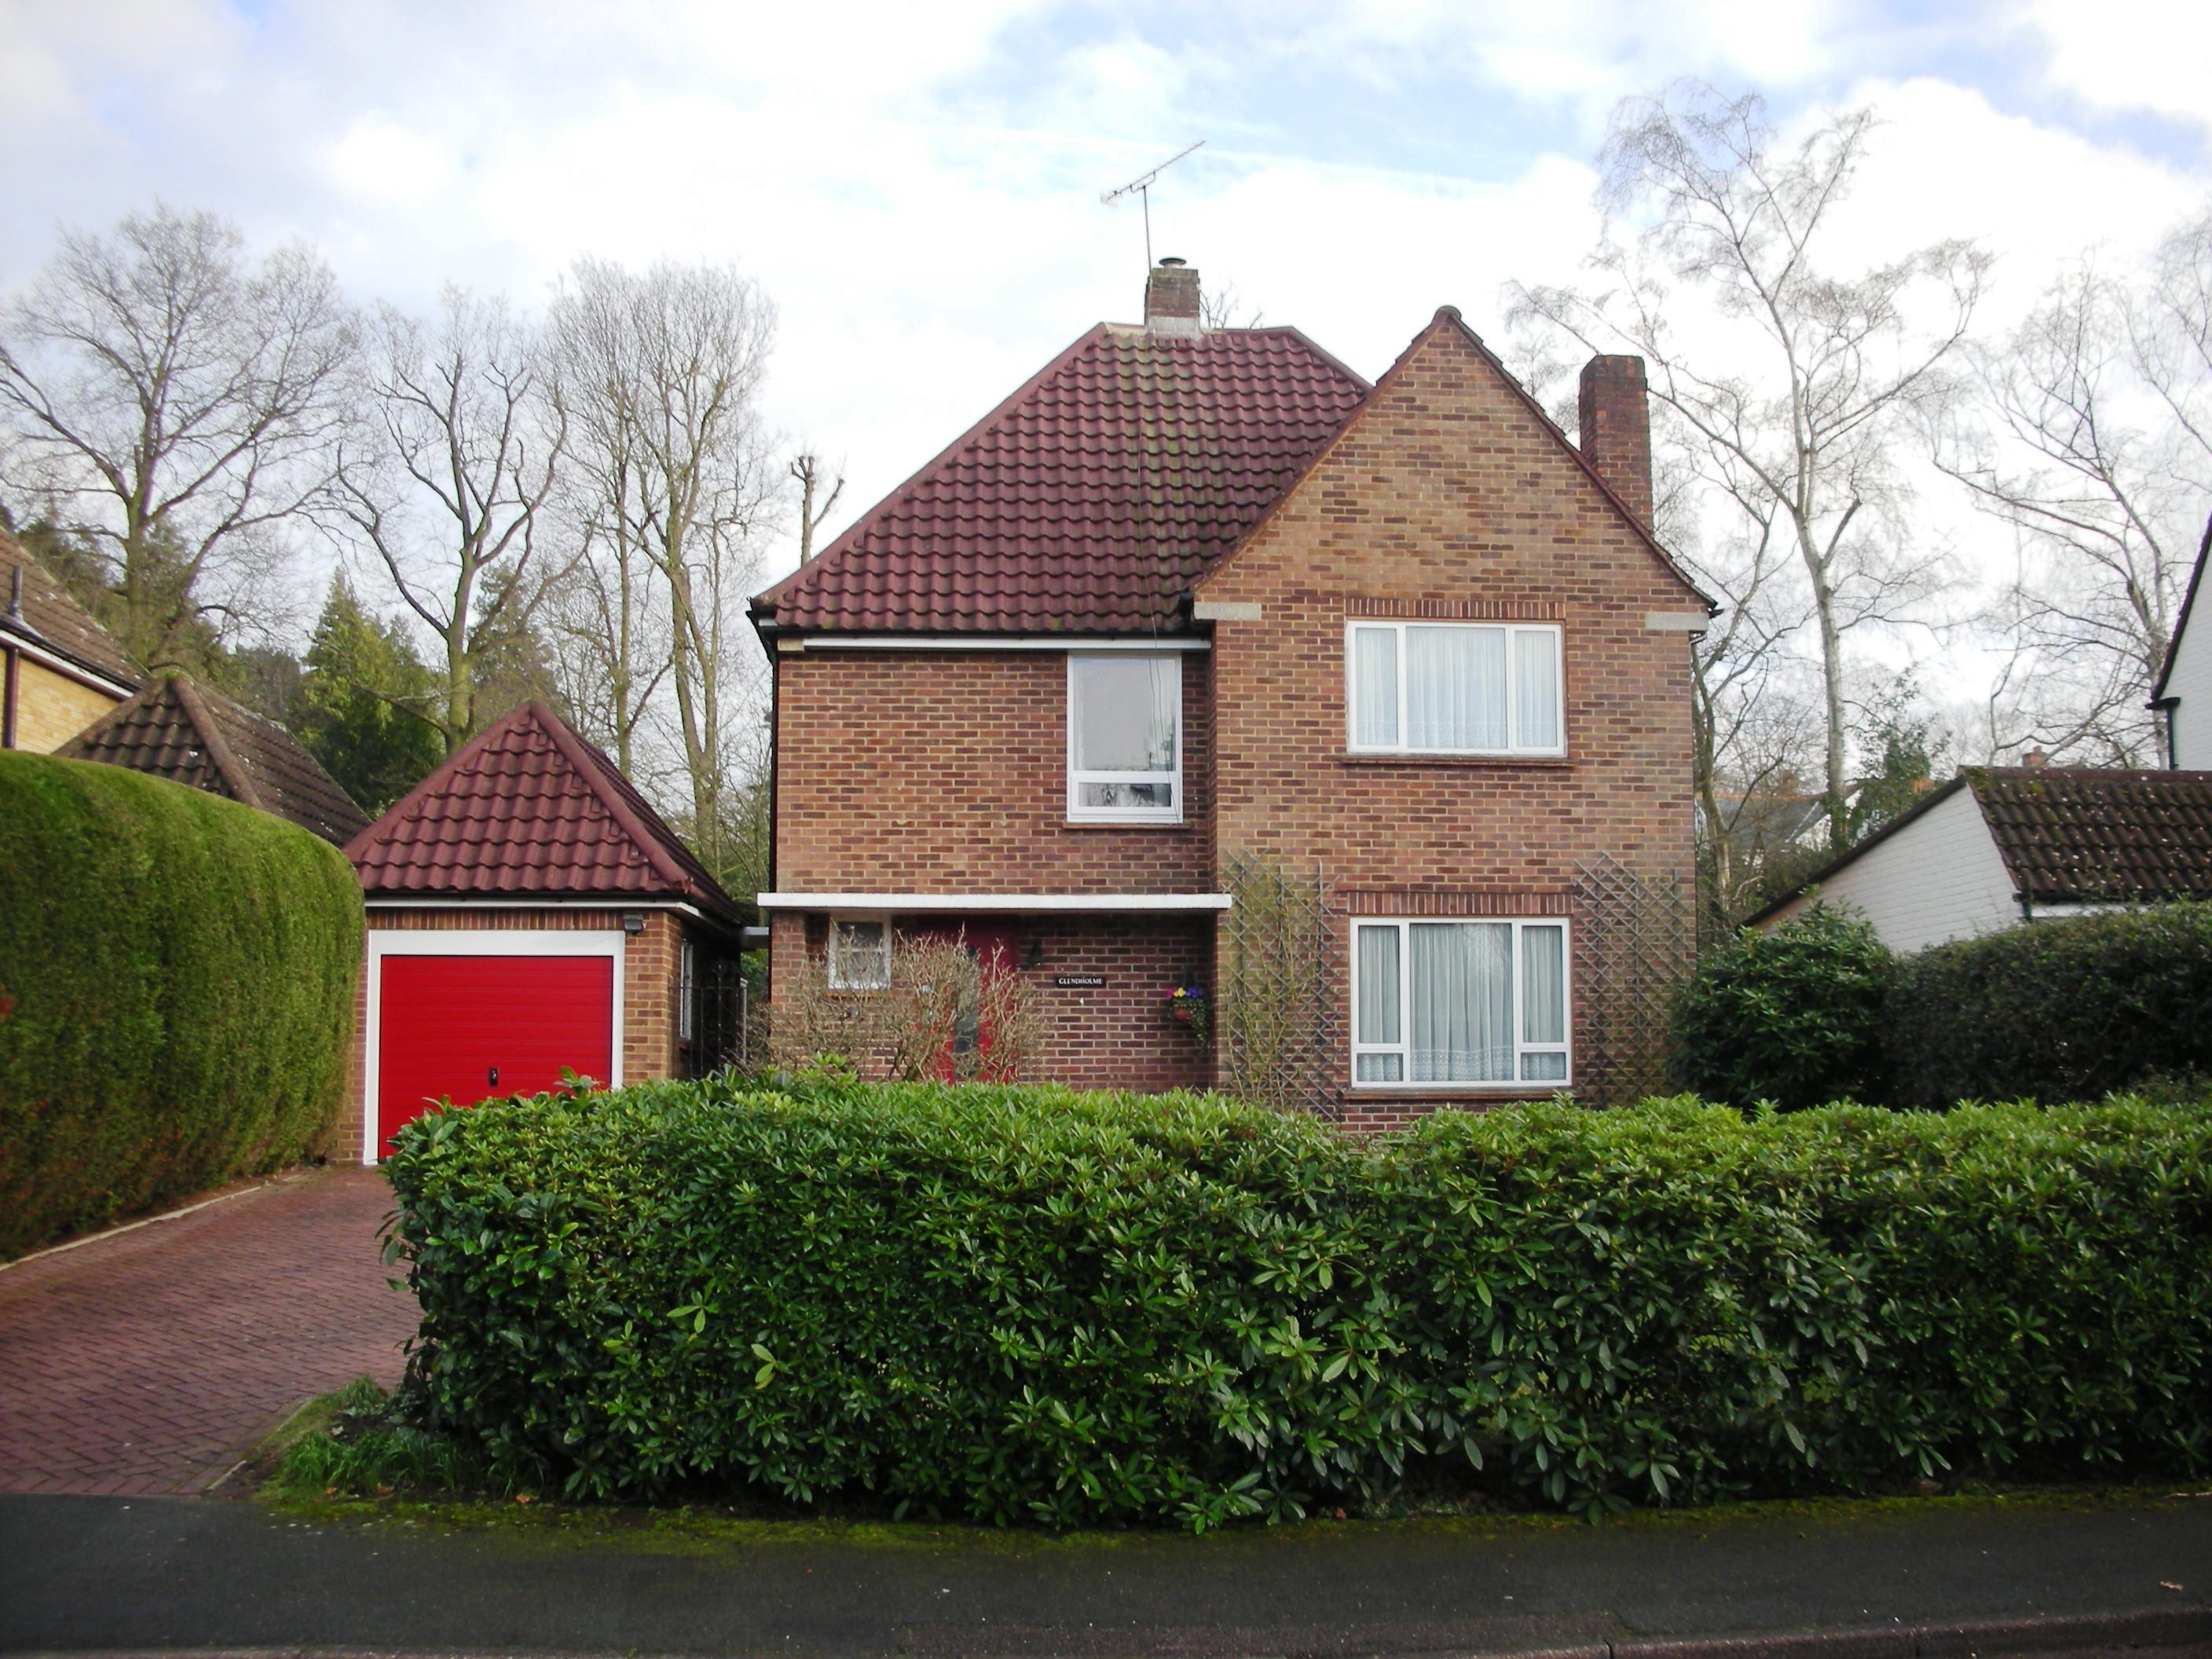 House in Camberley